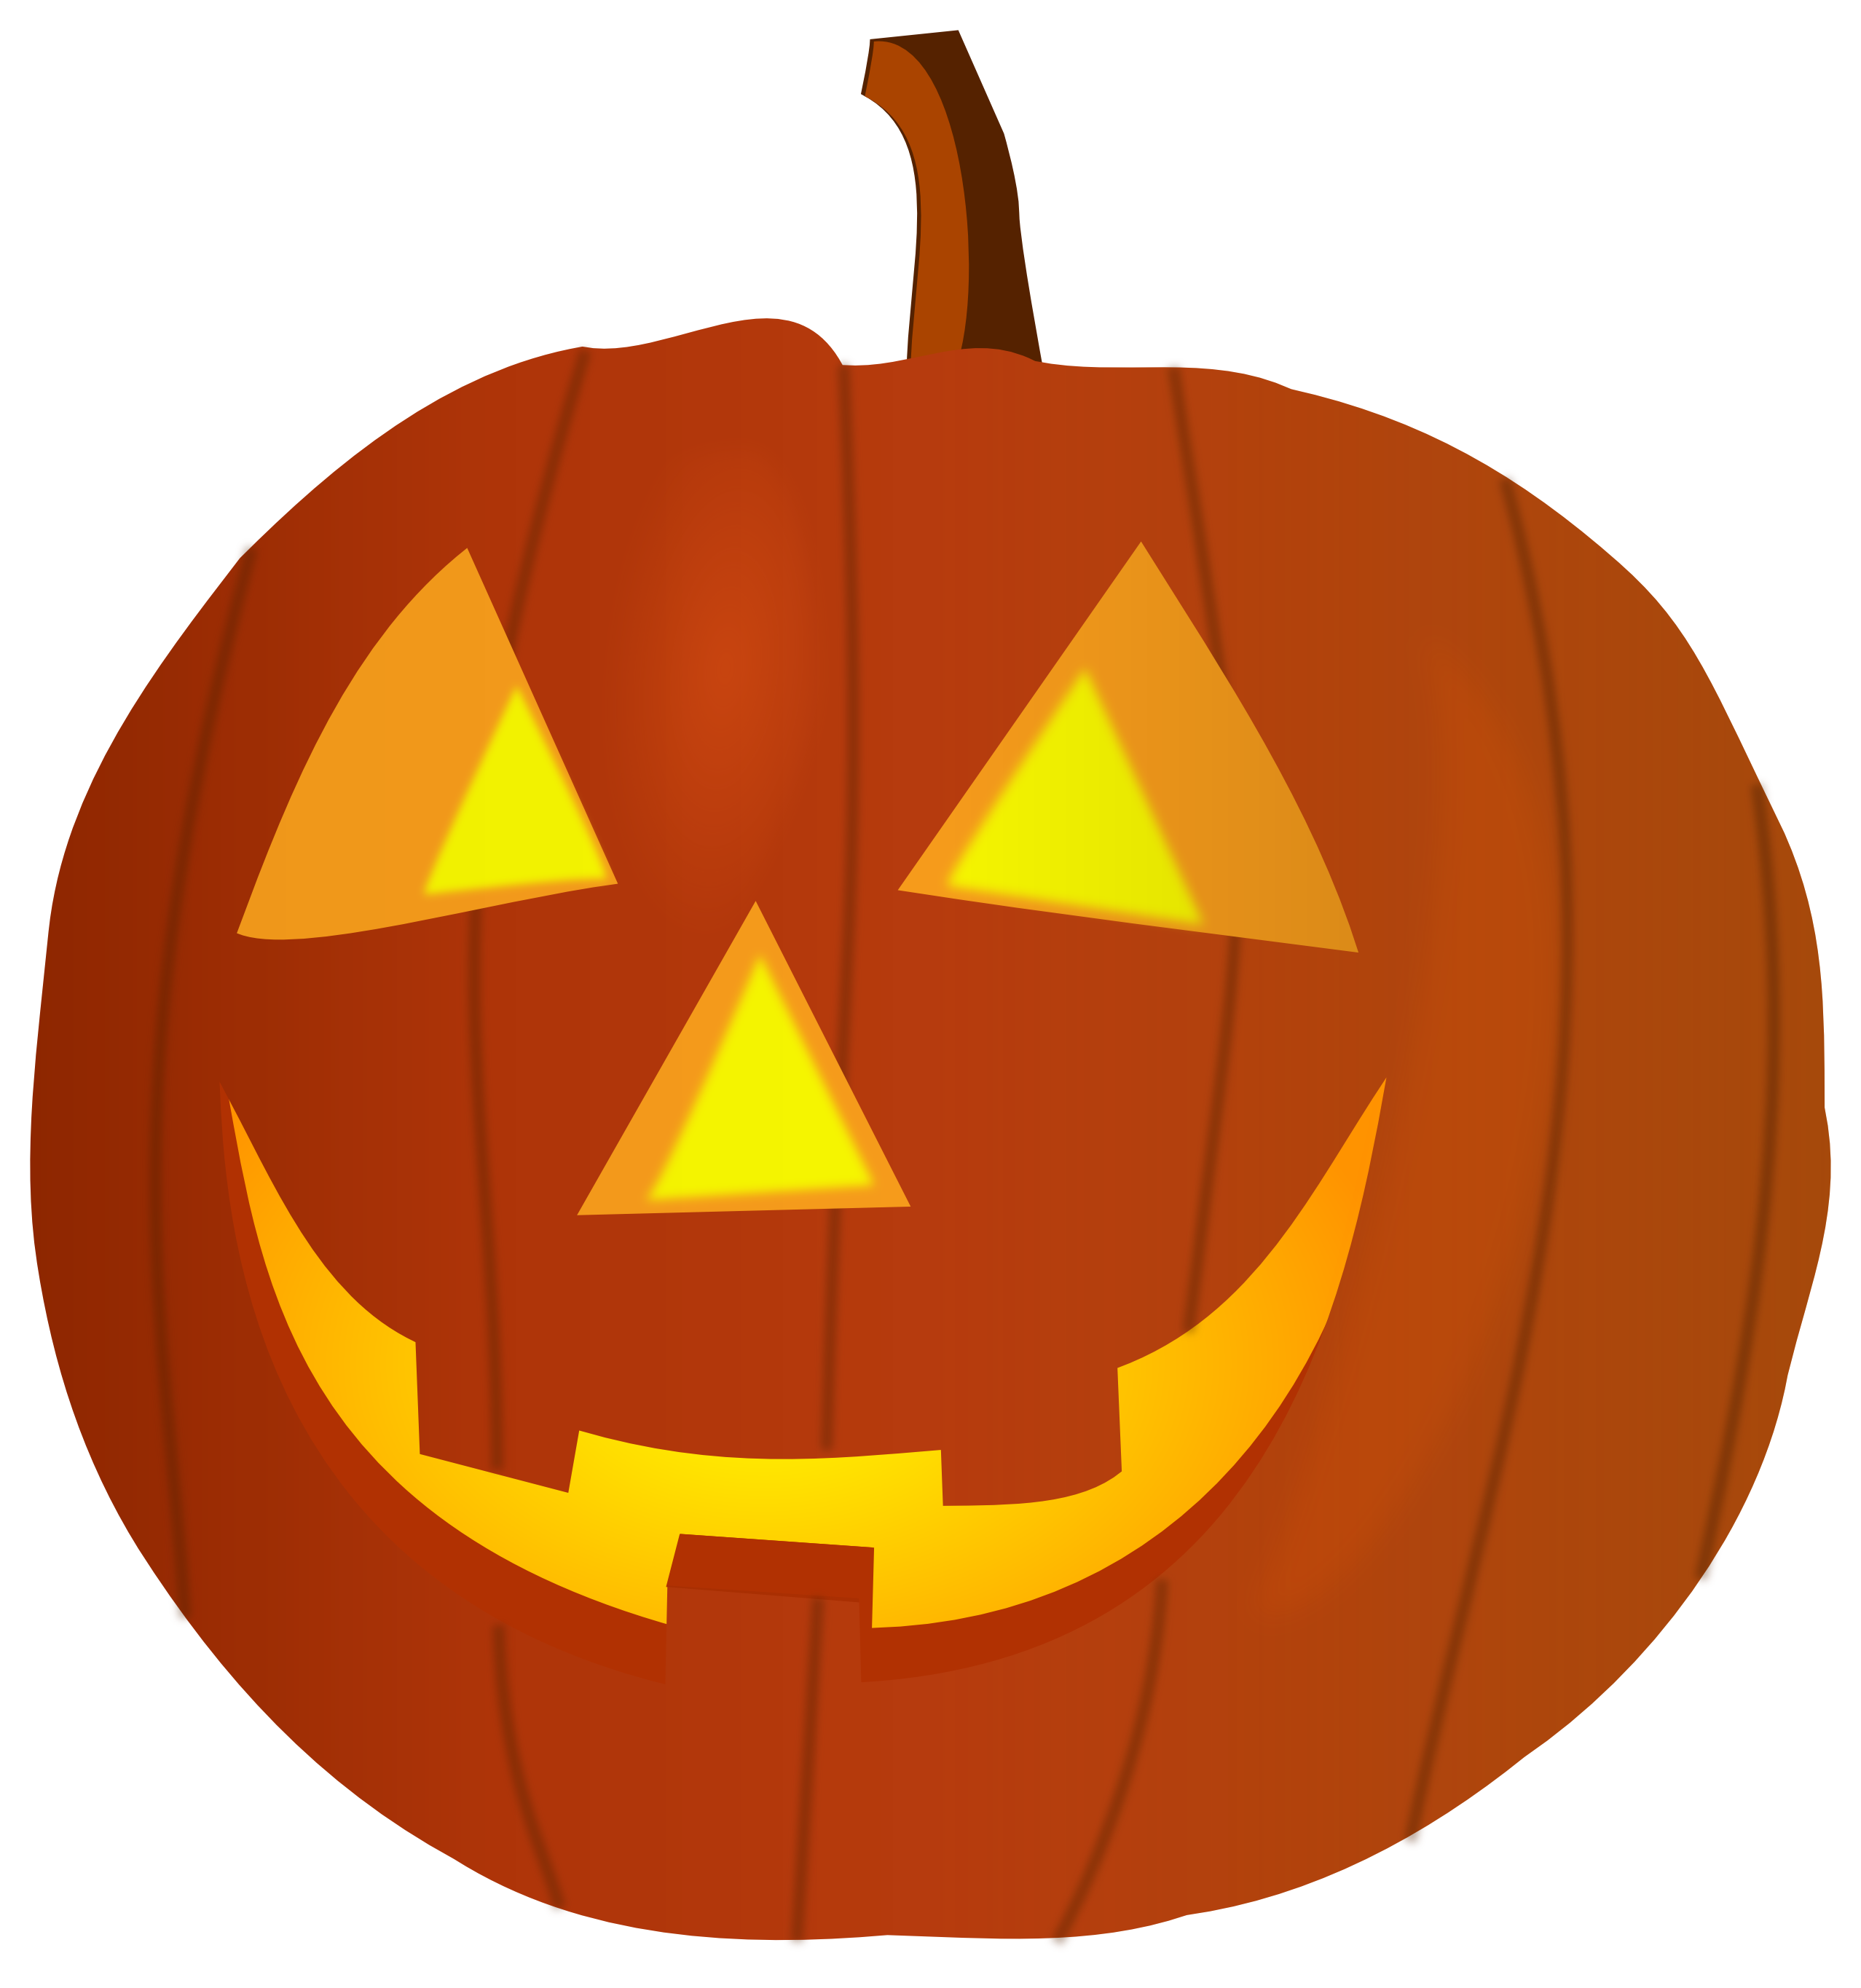 graphic freeuse download October clipart. Citrouille halloween pumpkin transparentpng.